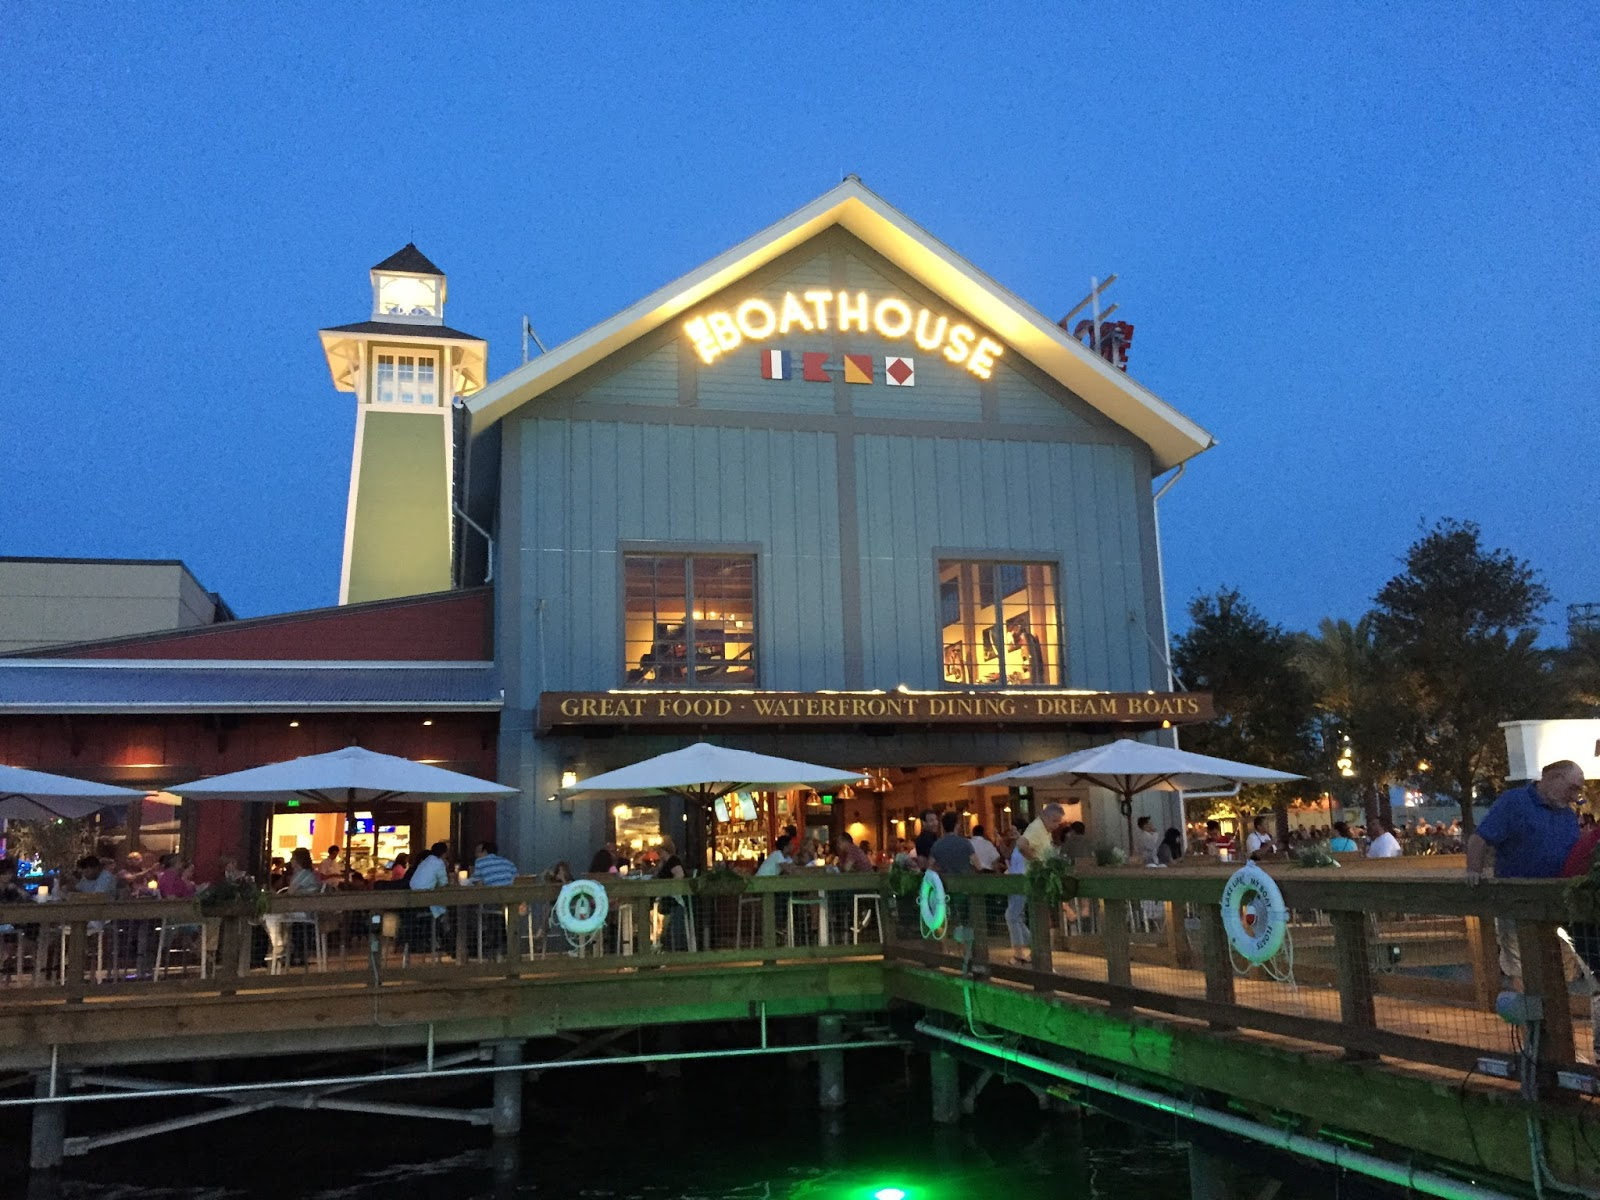 Disney Springs It Will Quickly Be The New Destination In Central Florida S Slated To Completed By 2016 And Offer 150 Ping Dining